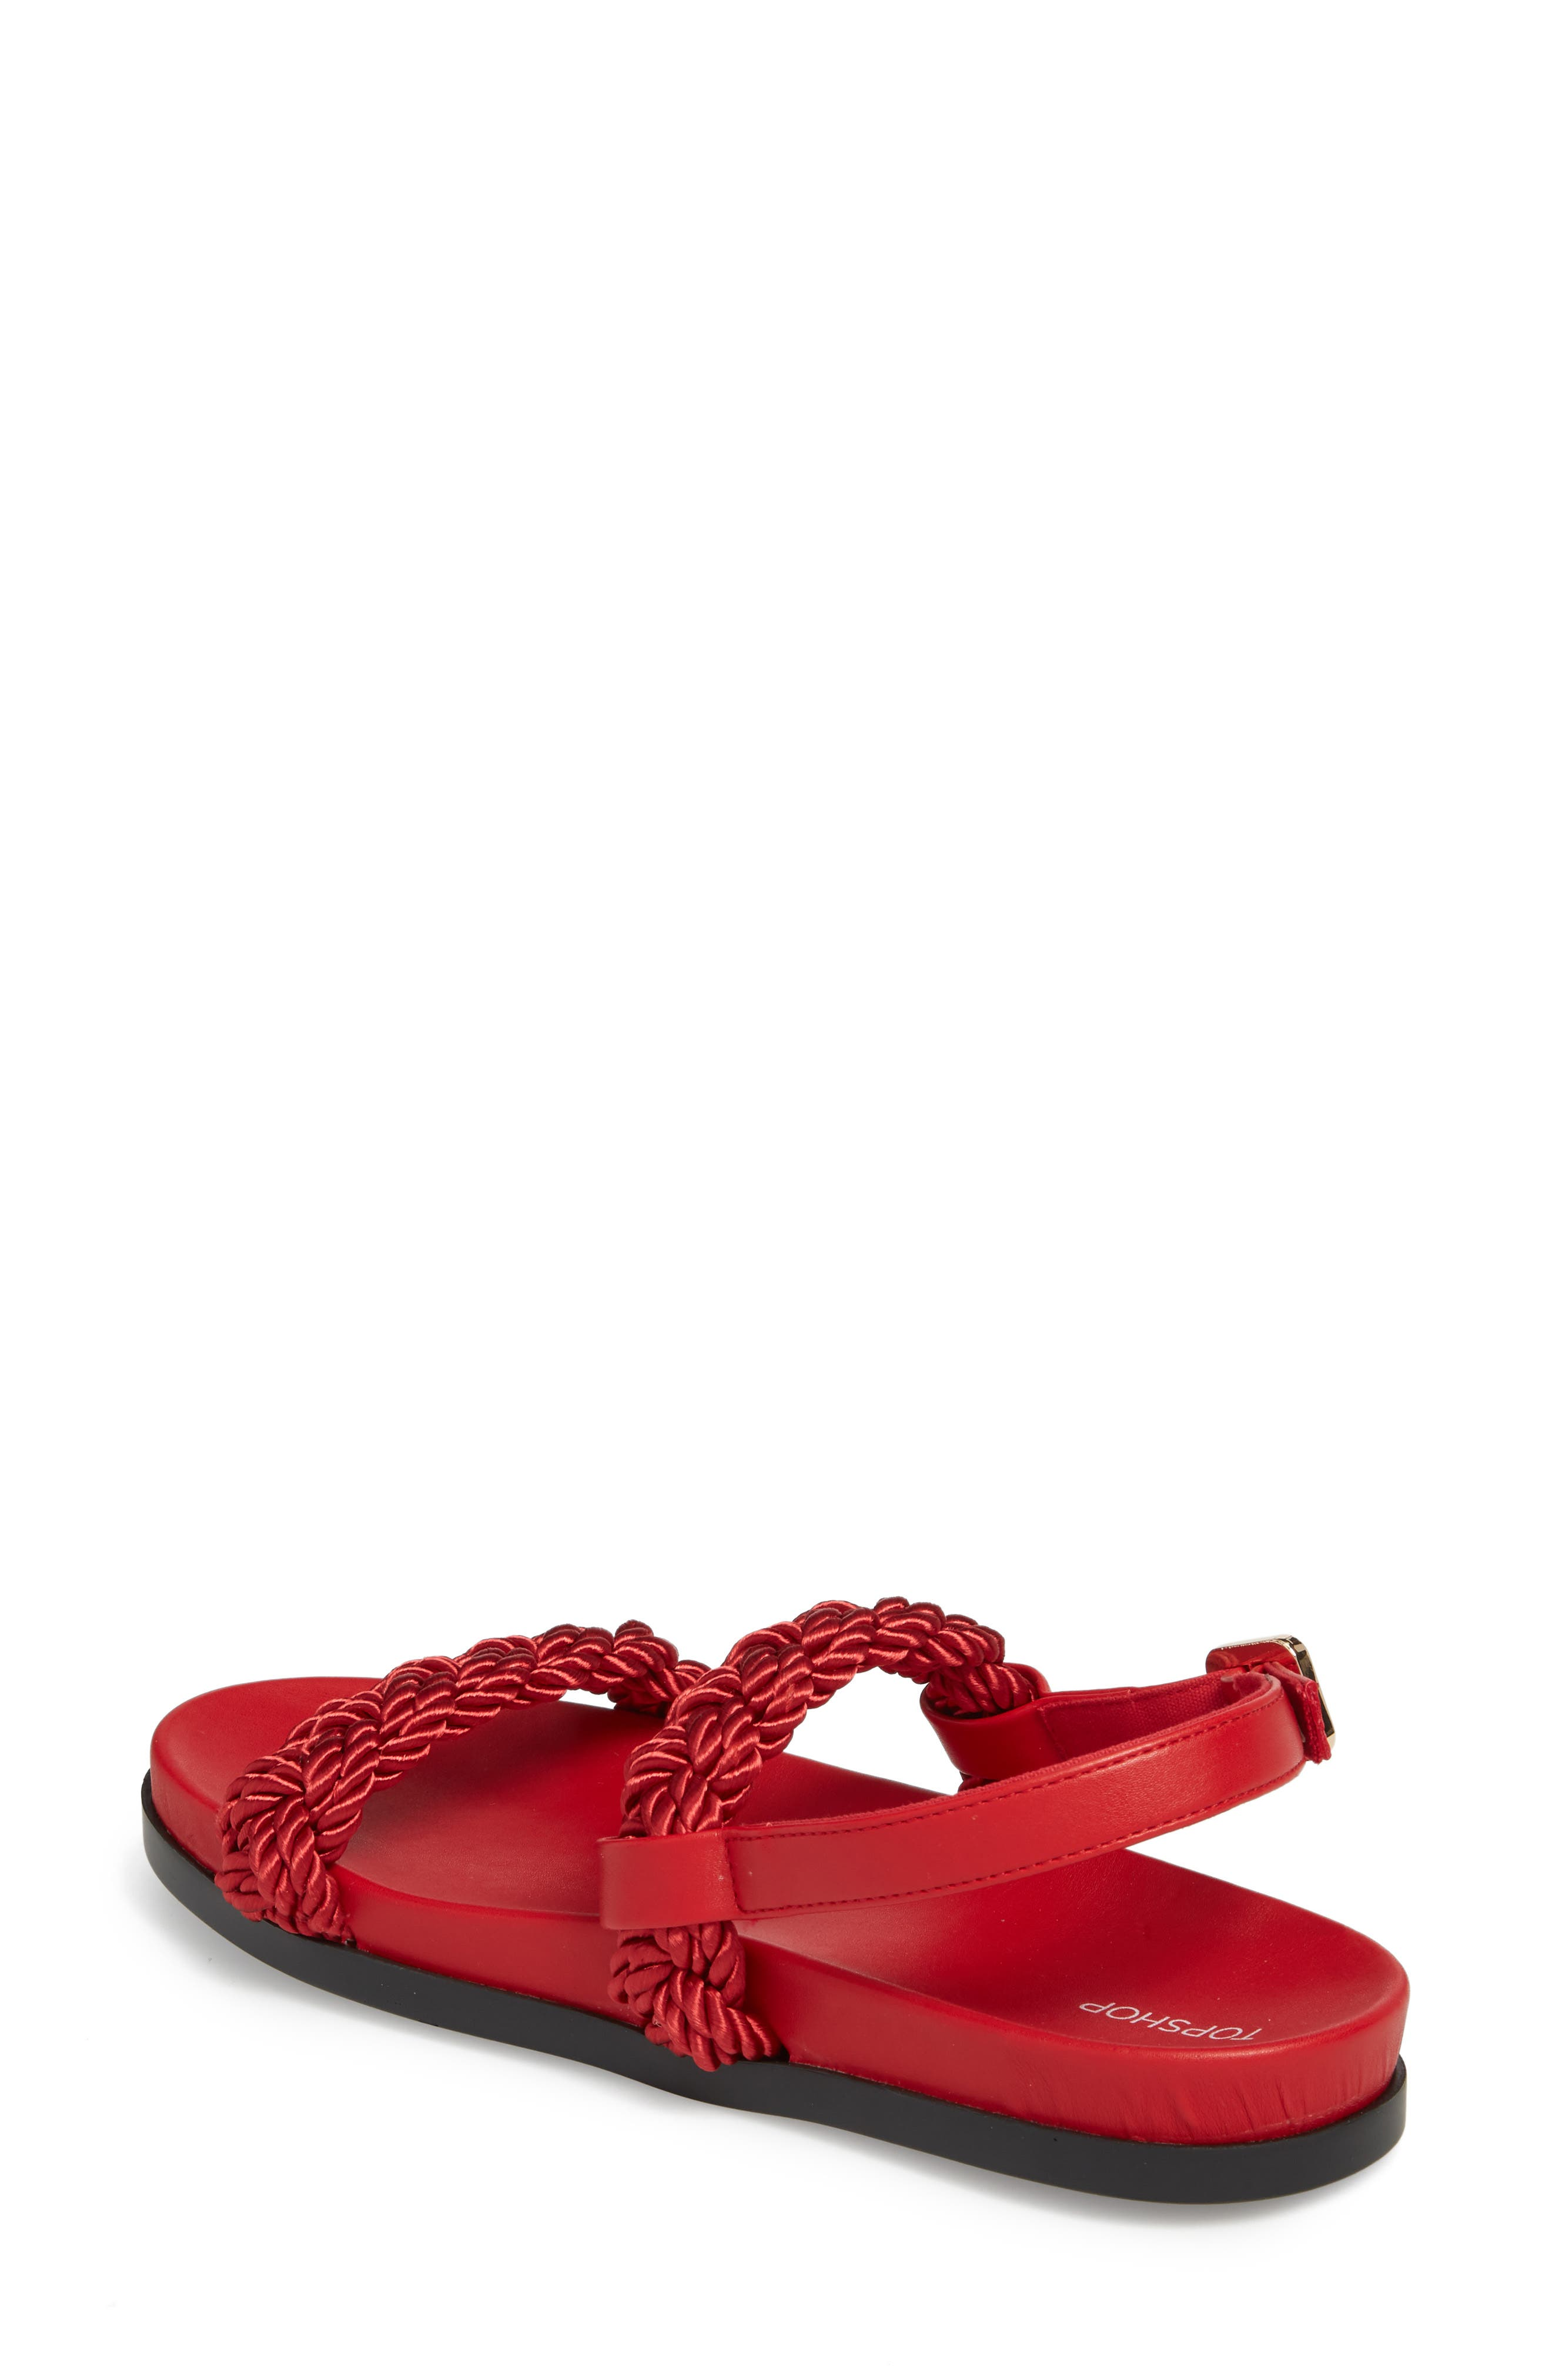 Hackney Rope Footbed Sandals,                             Alternate thumbnail 2, color,                             600